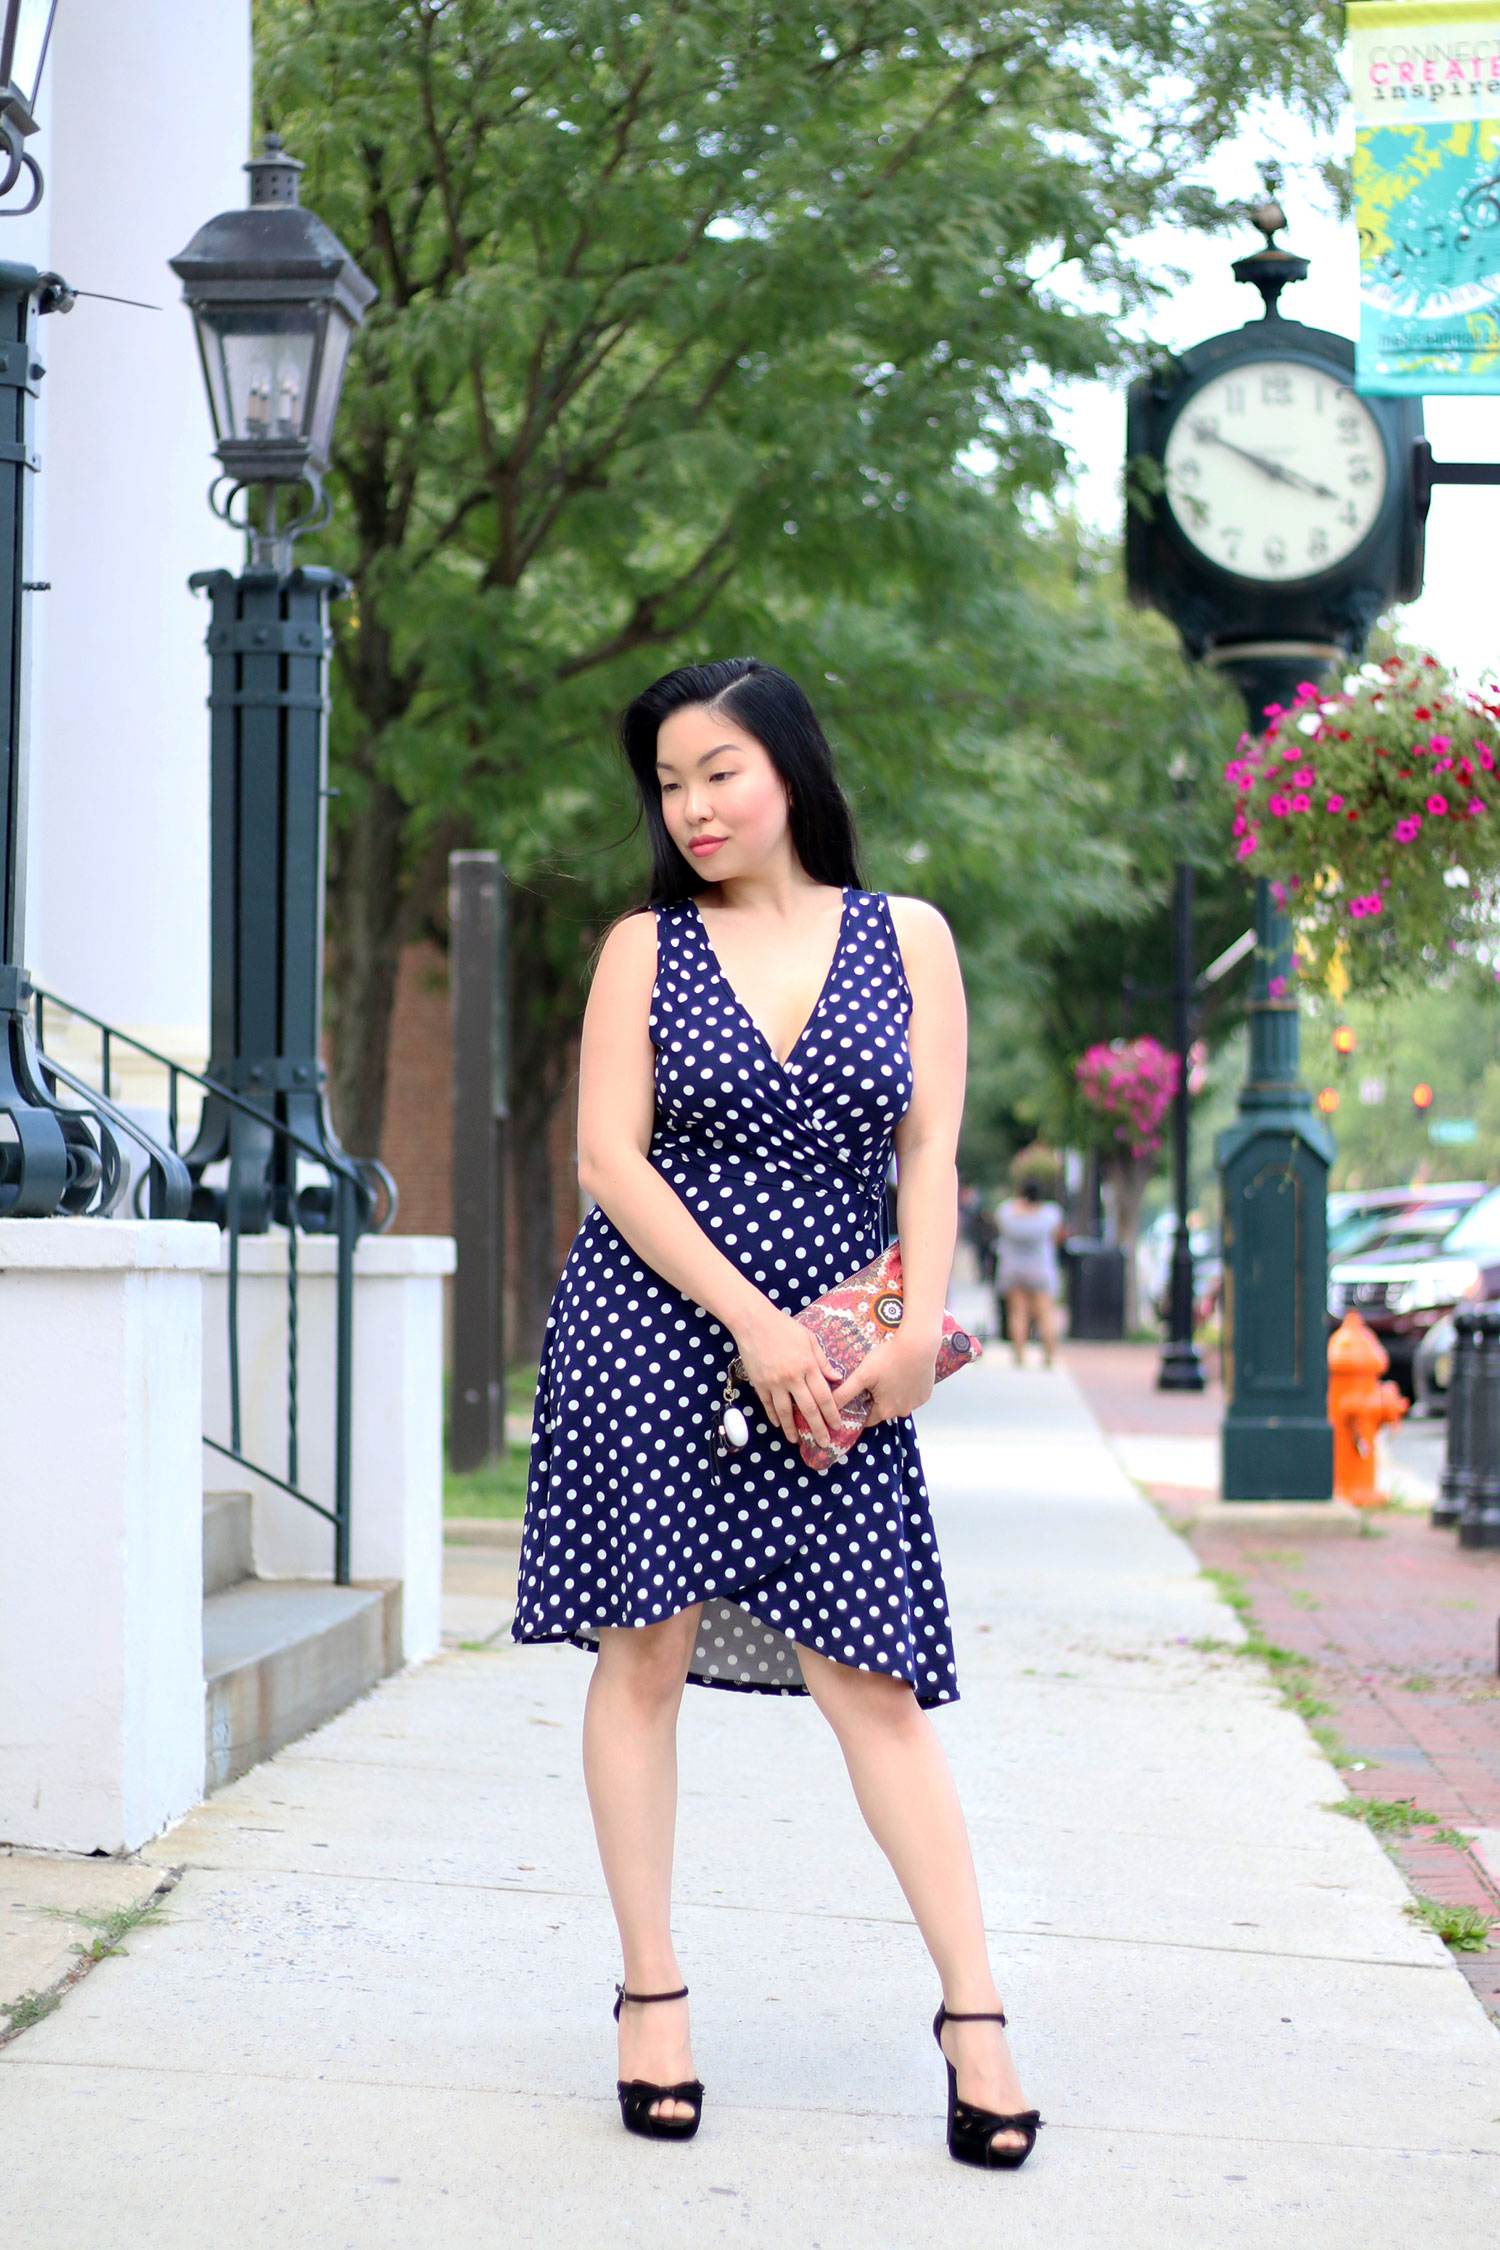 savers thrift store dress